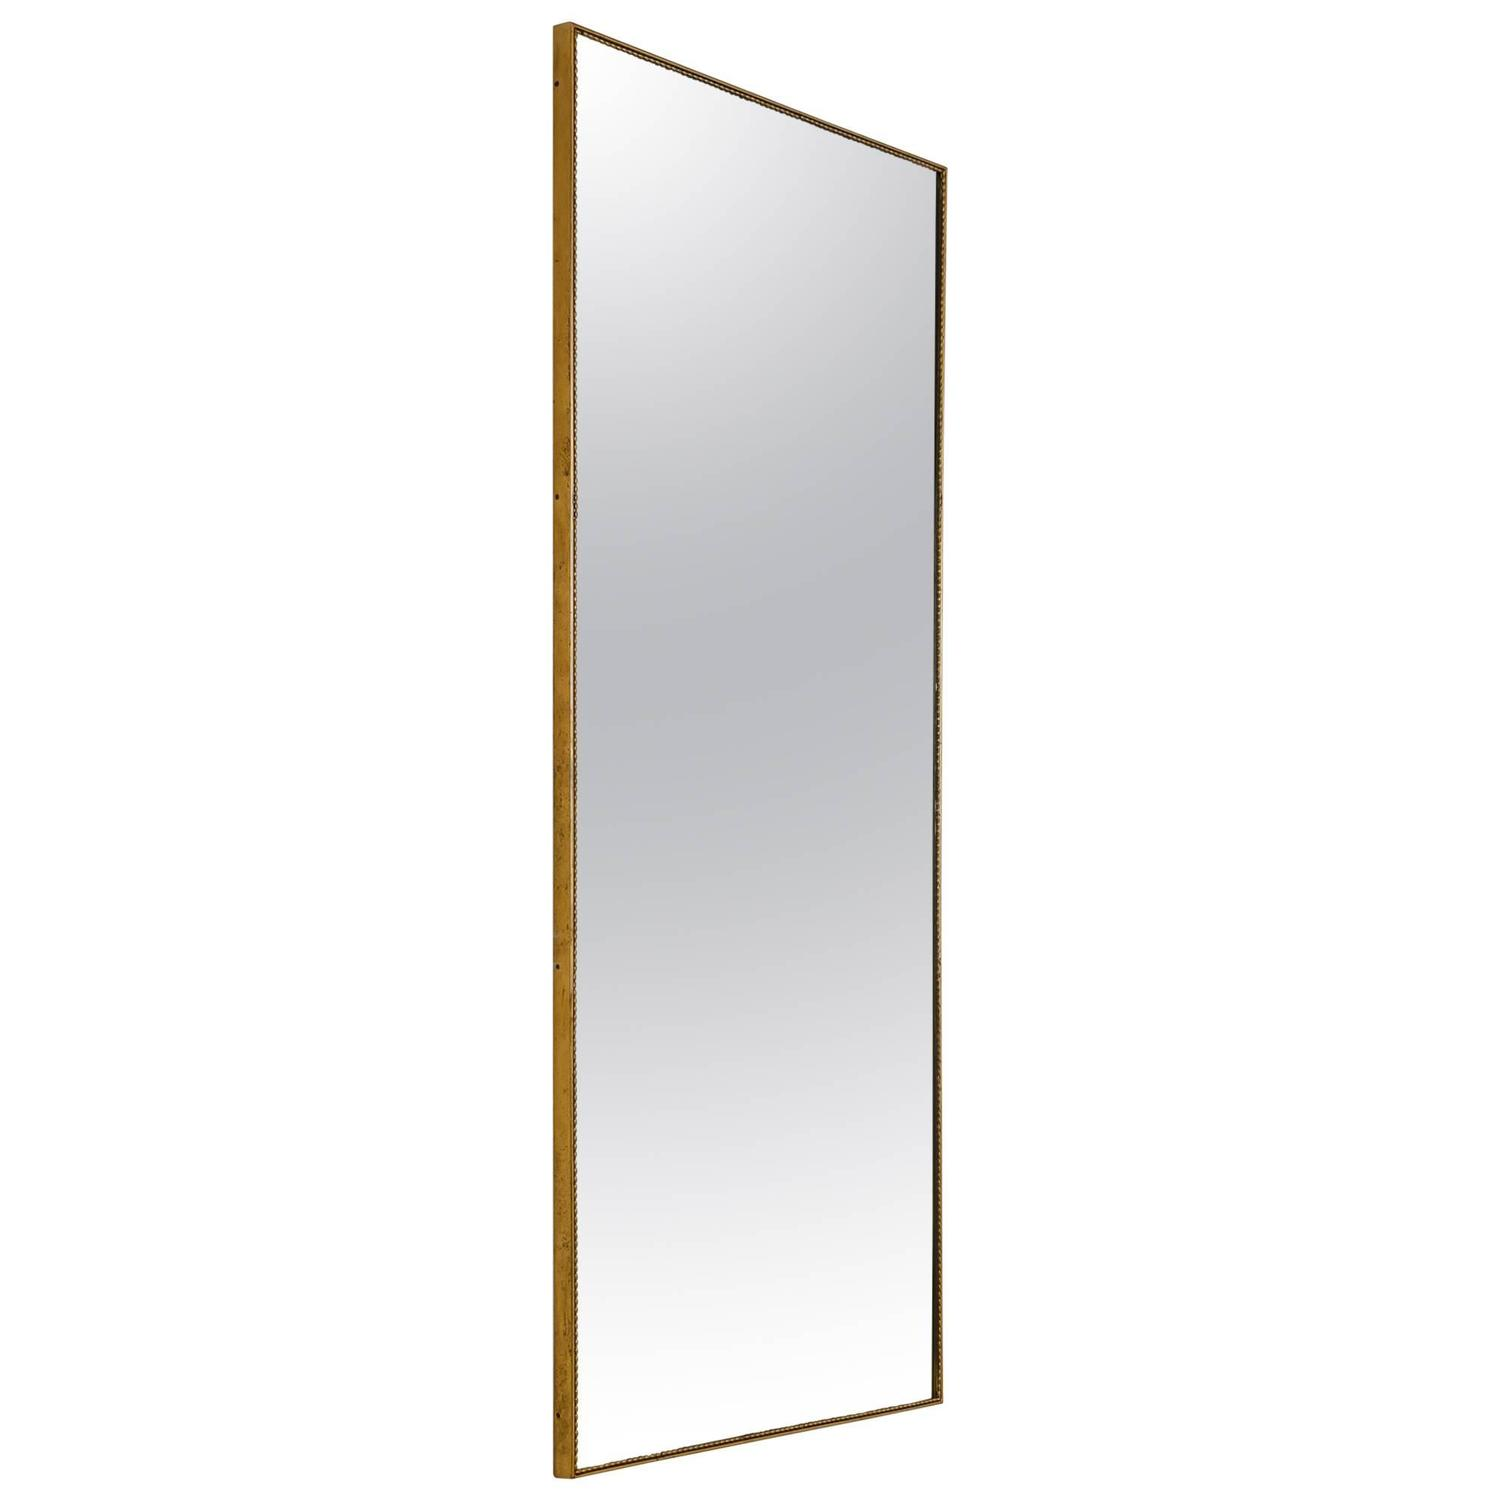 Mirrored framed mirror small multi faceted wall mirror for Small long mirrors